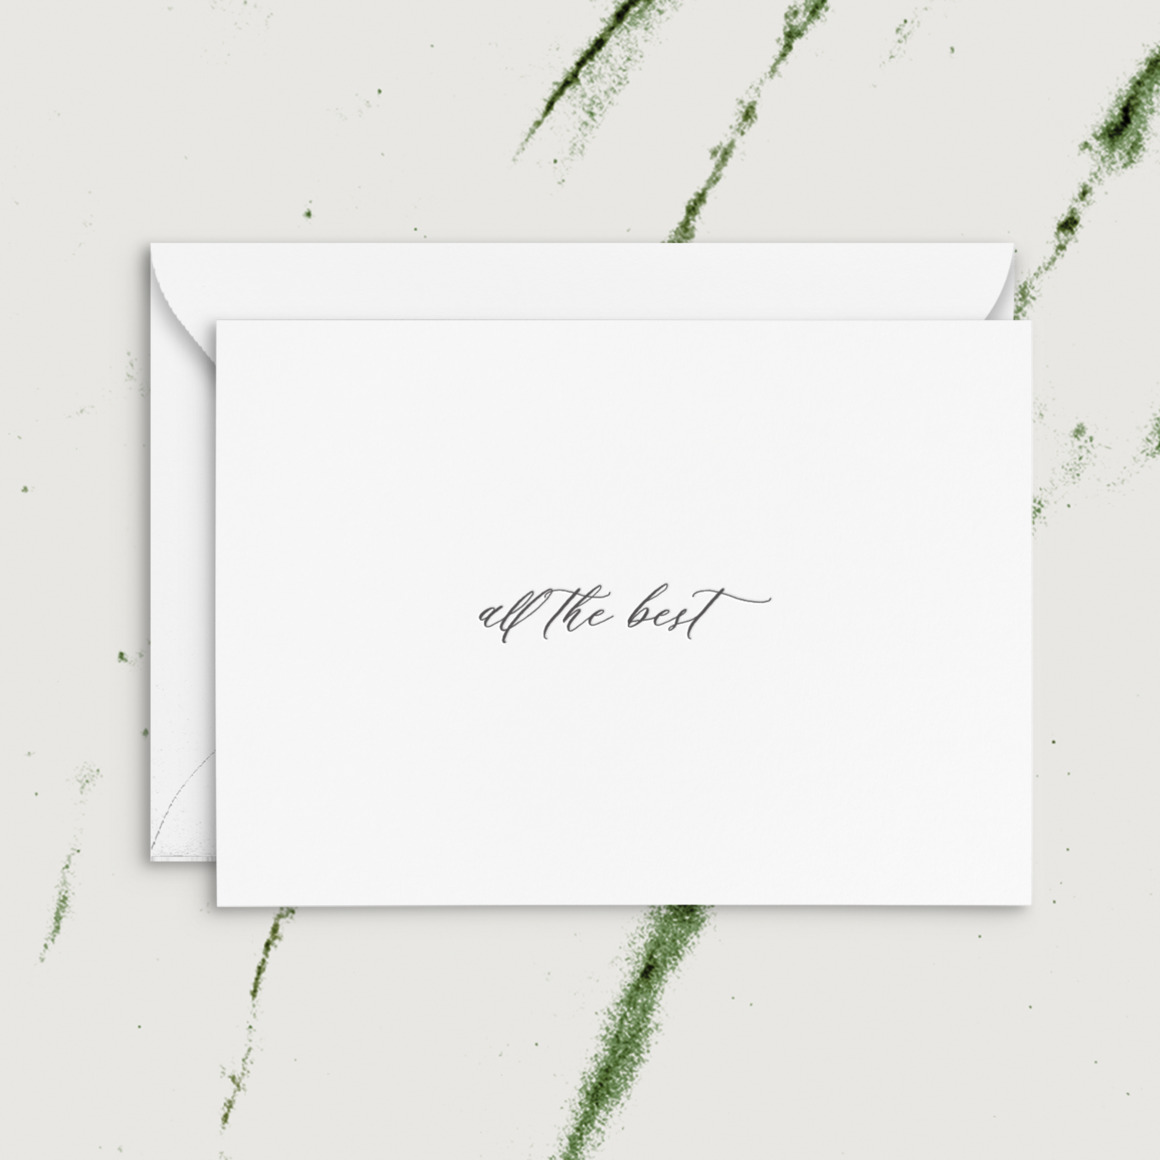 All The Best   Letterpress Greeting Card   Trada Marketplace